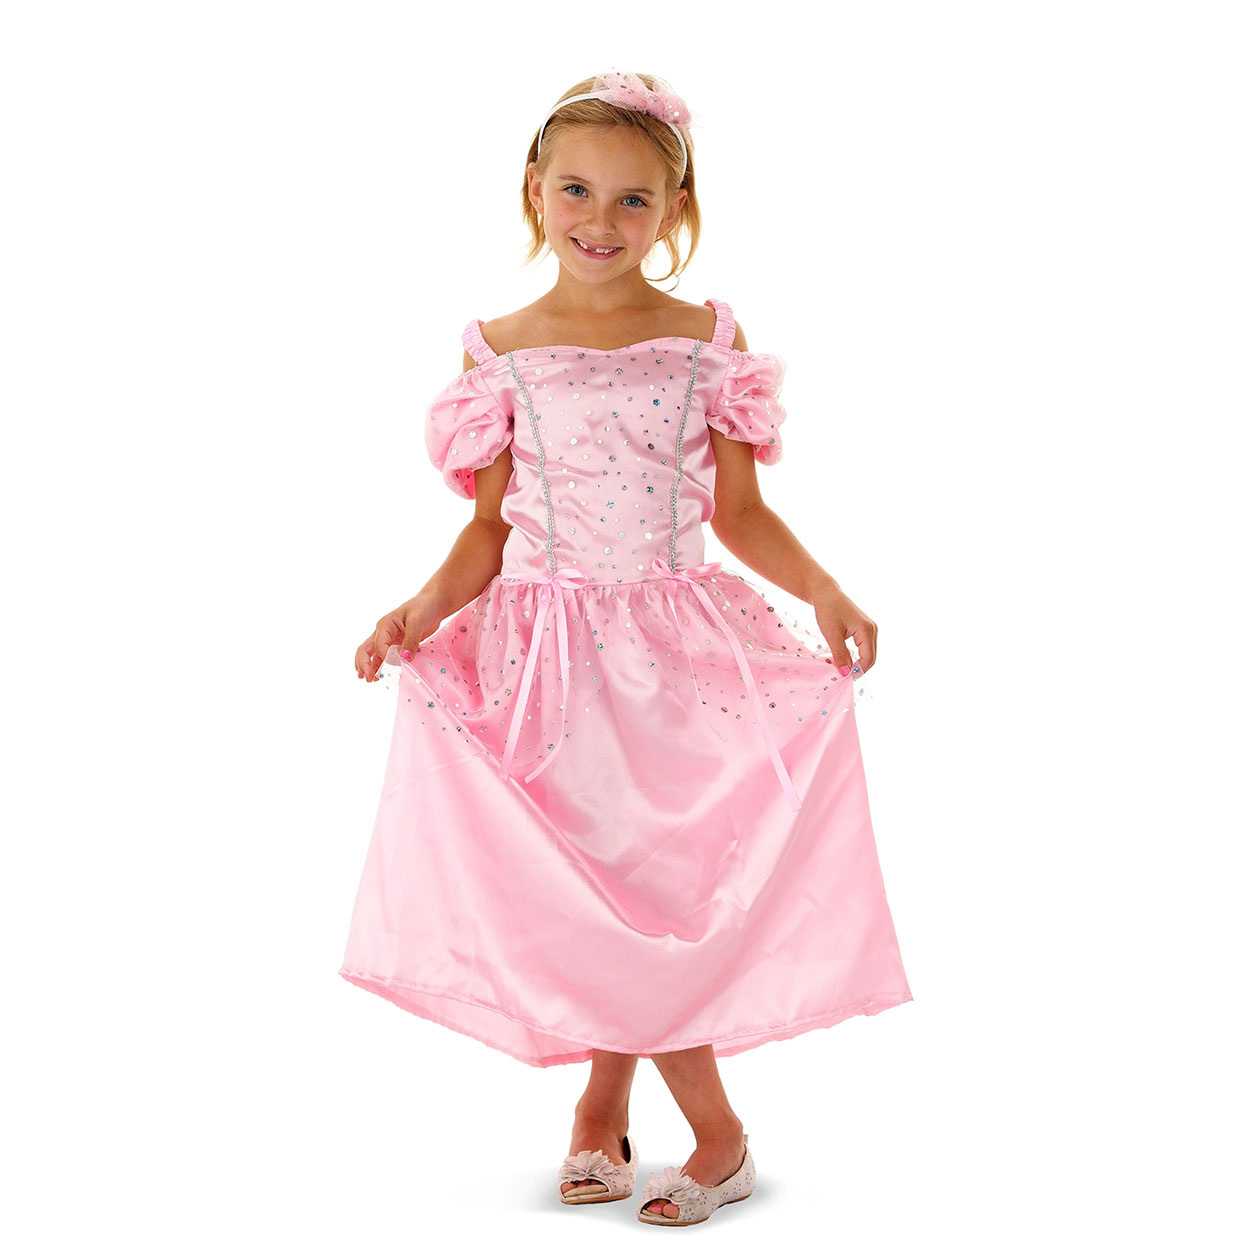 Verkleedset Traditionele Prinses - S